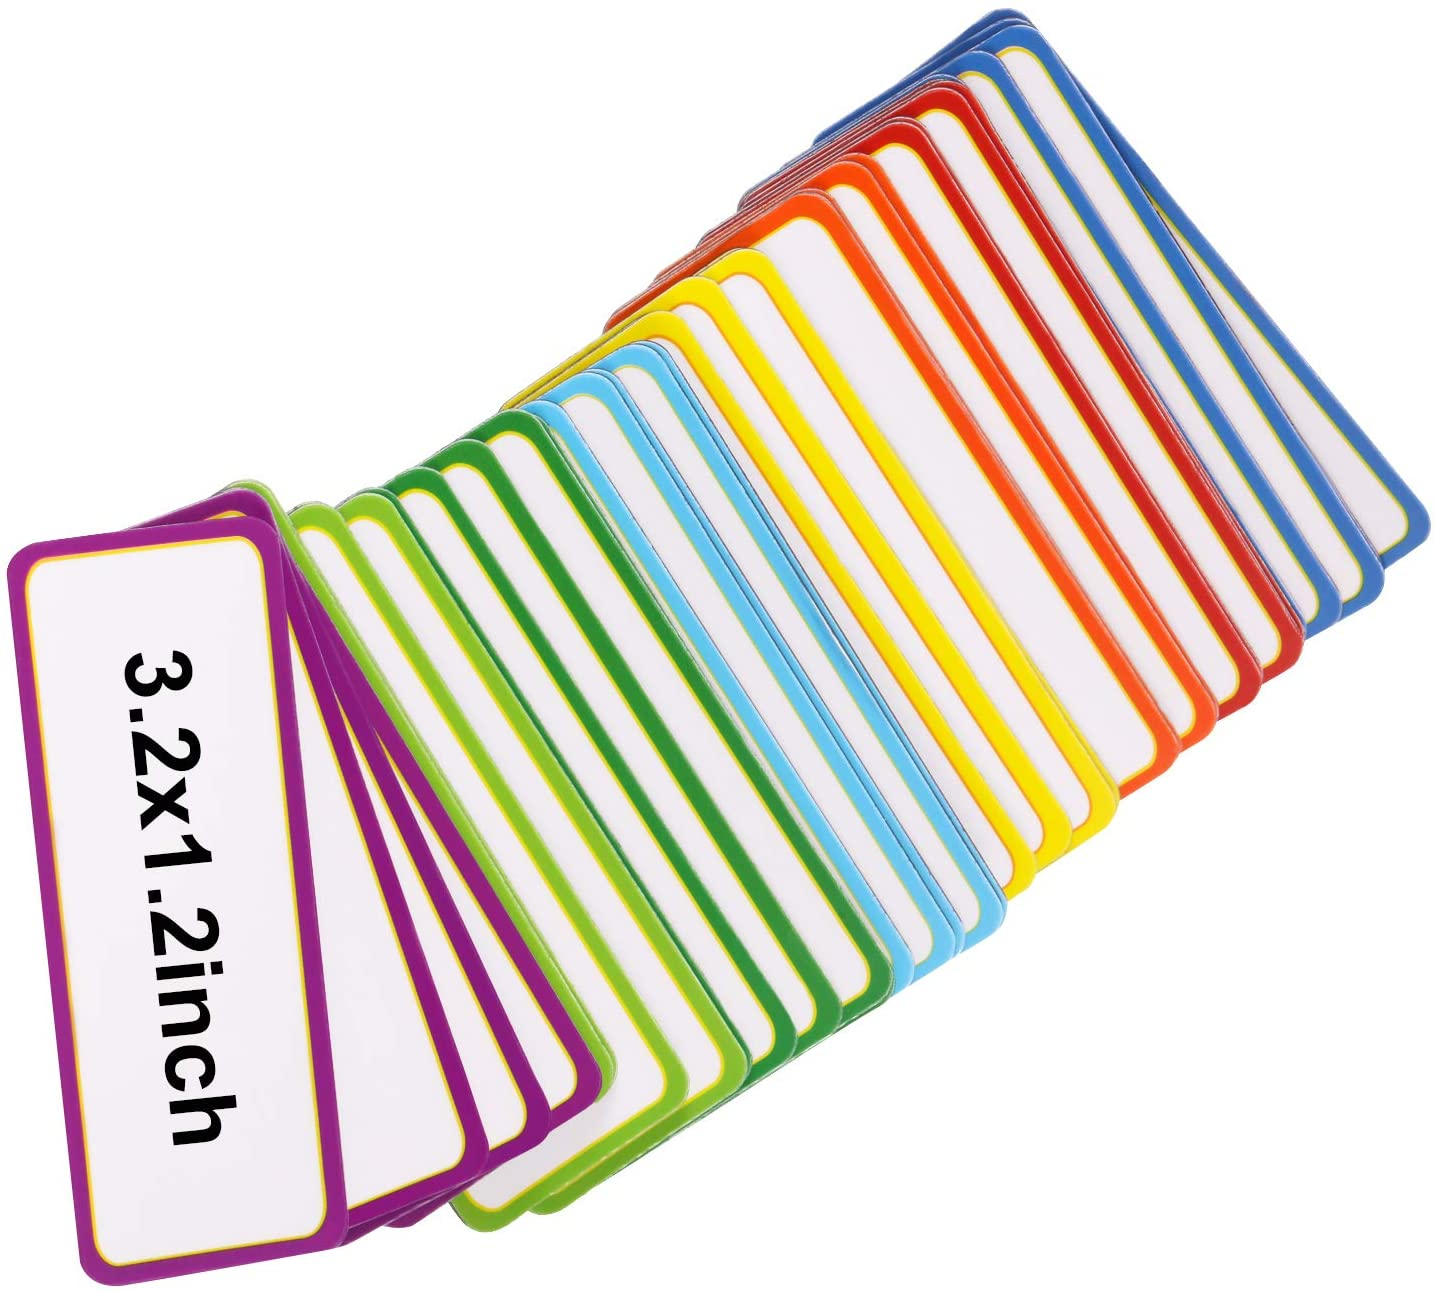 Color B, 3.2 x 1.2 inch 40 Pieces Magnetic Dry Erase Labels Name Plate Tags Flexible Magnetic Label Stickers for Whiteboards Refrigerator Crafts